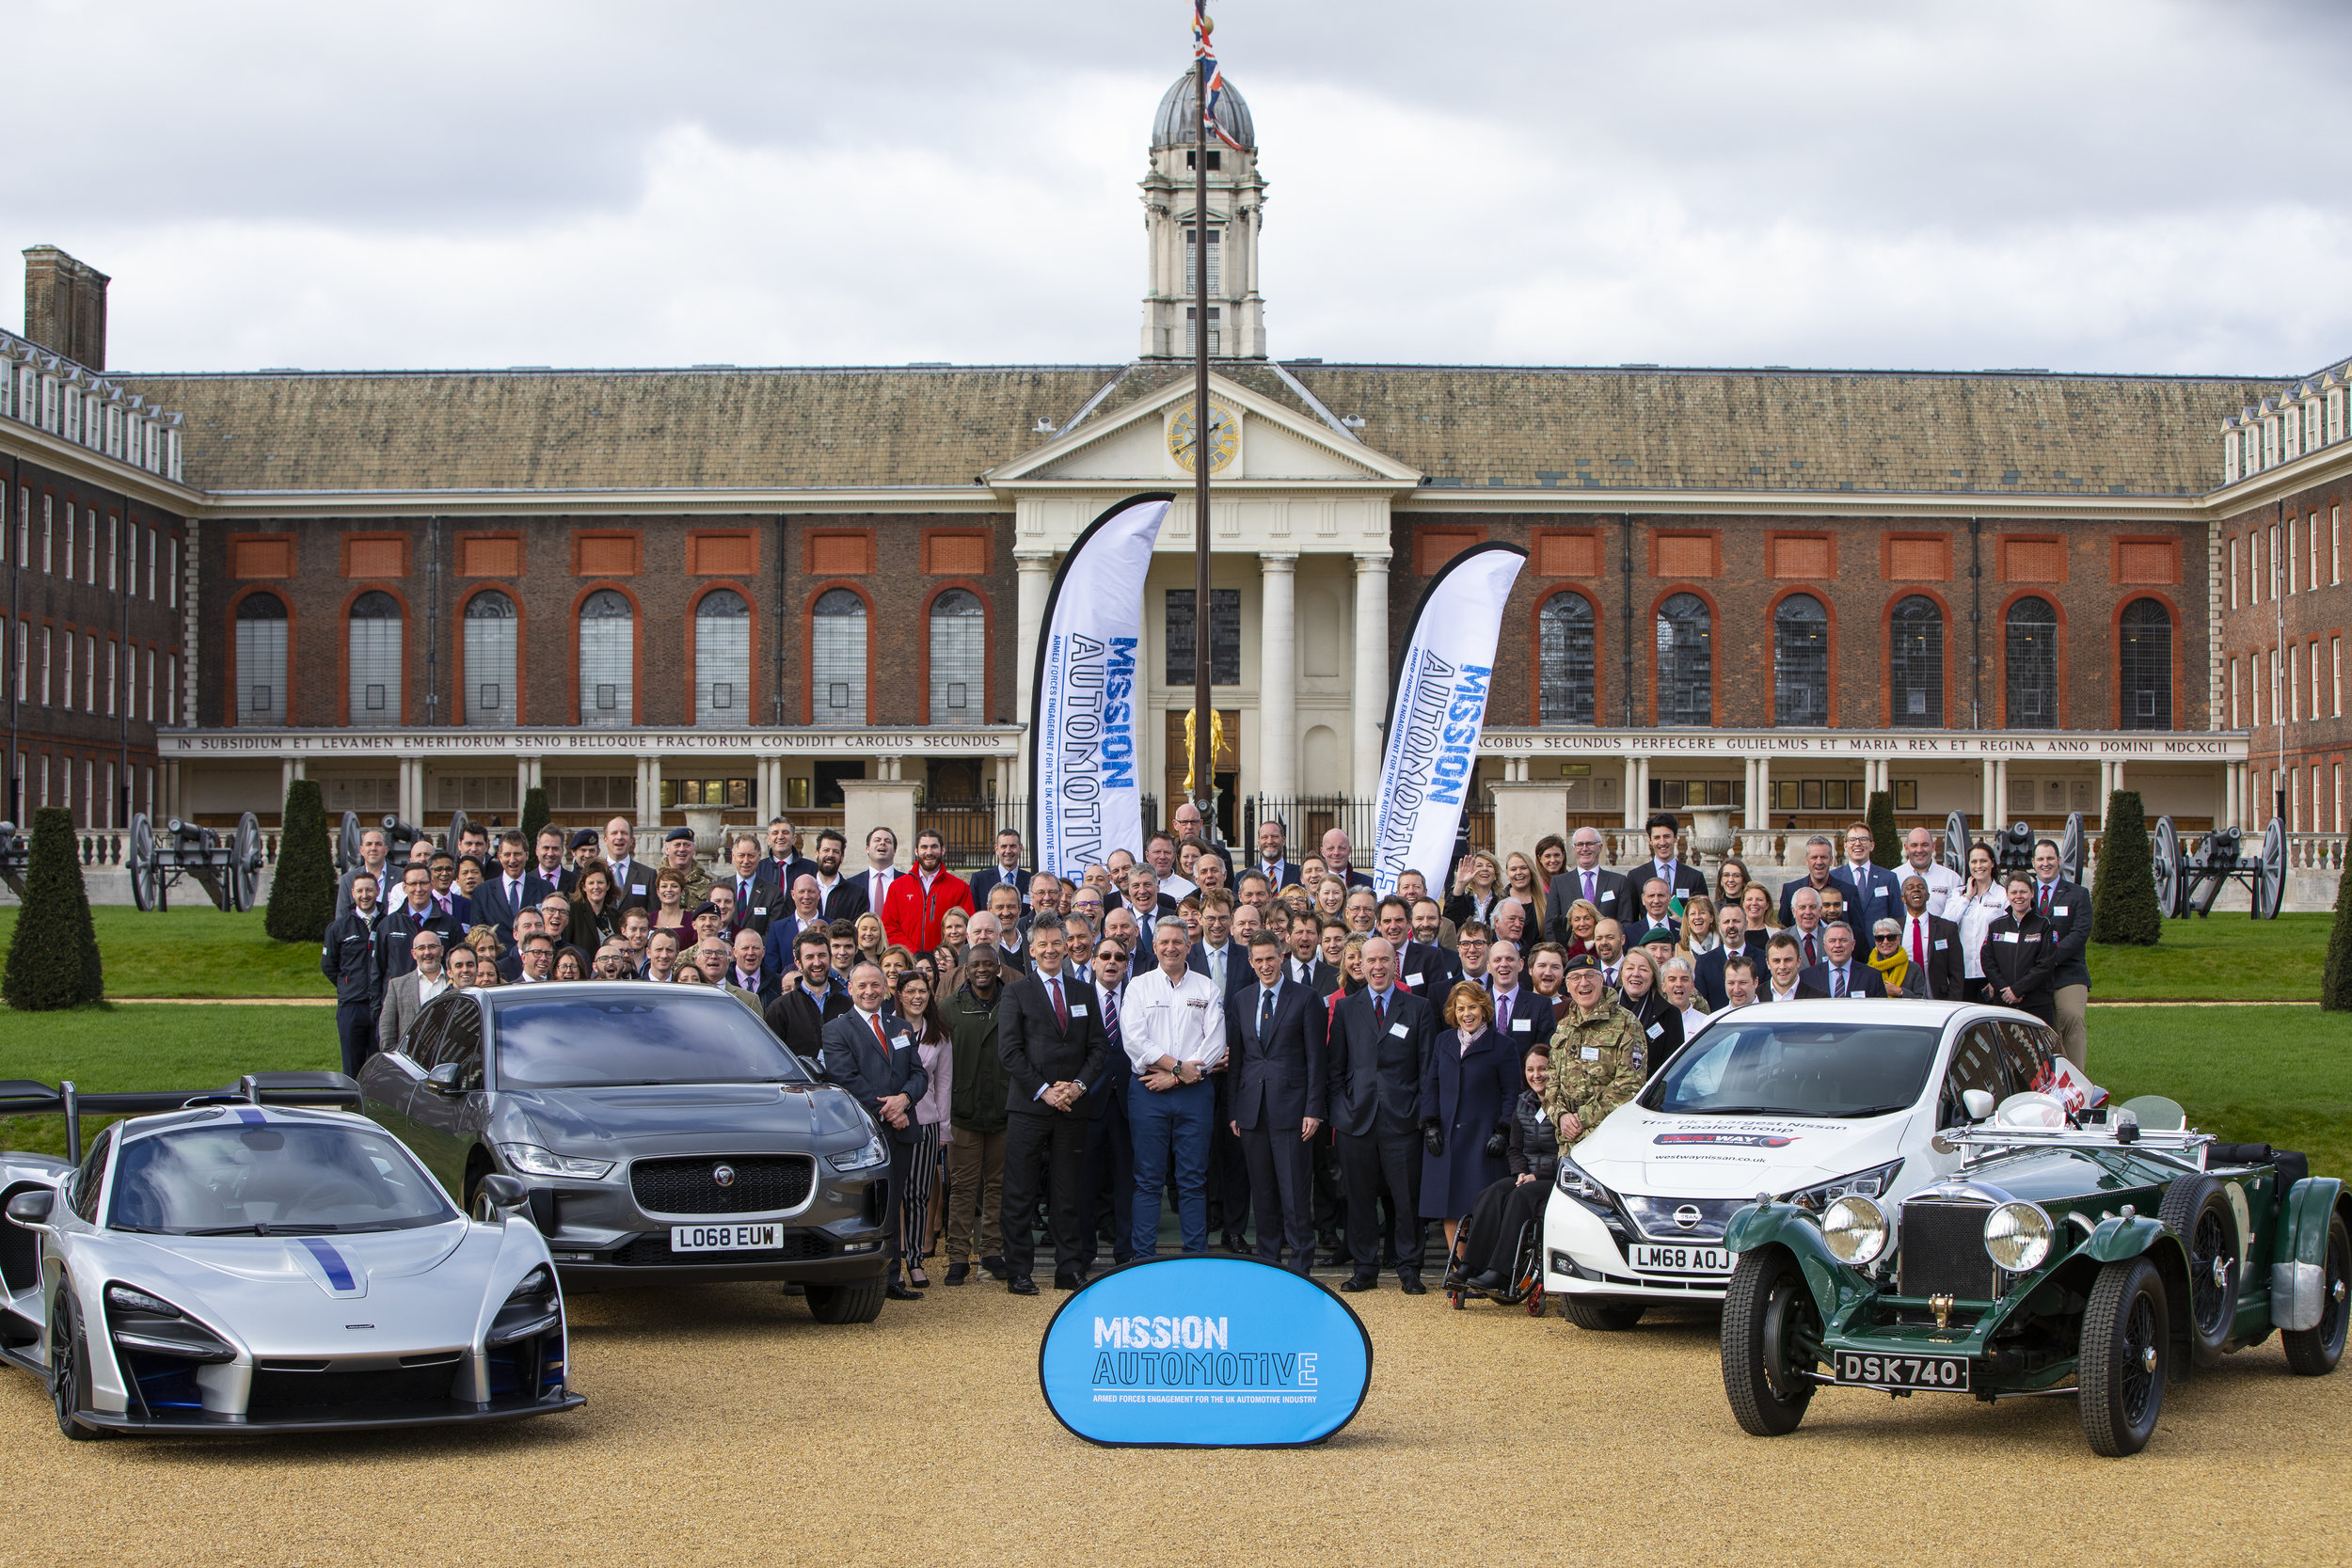 Mission Automotive's Public Launch! 07/03/19 Royal Hospital Chelsea!